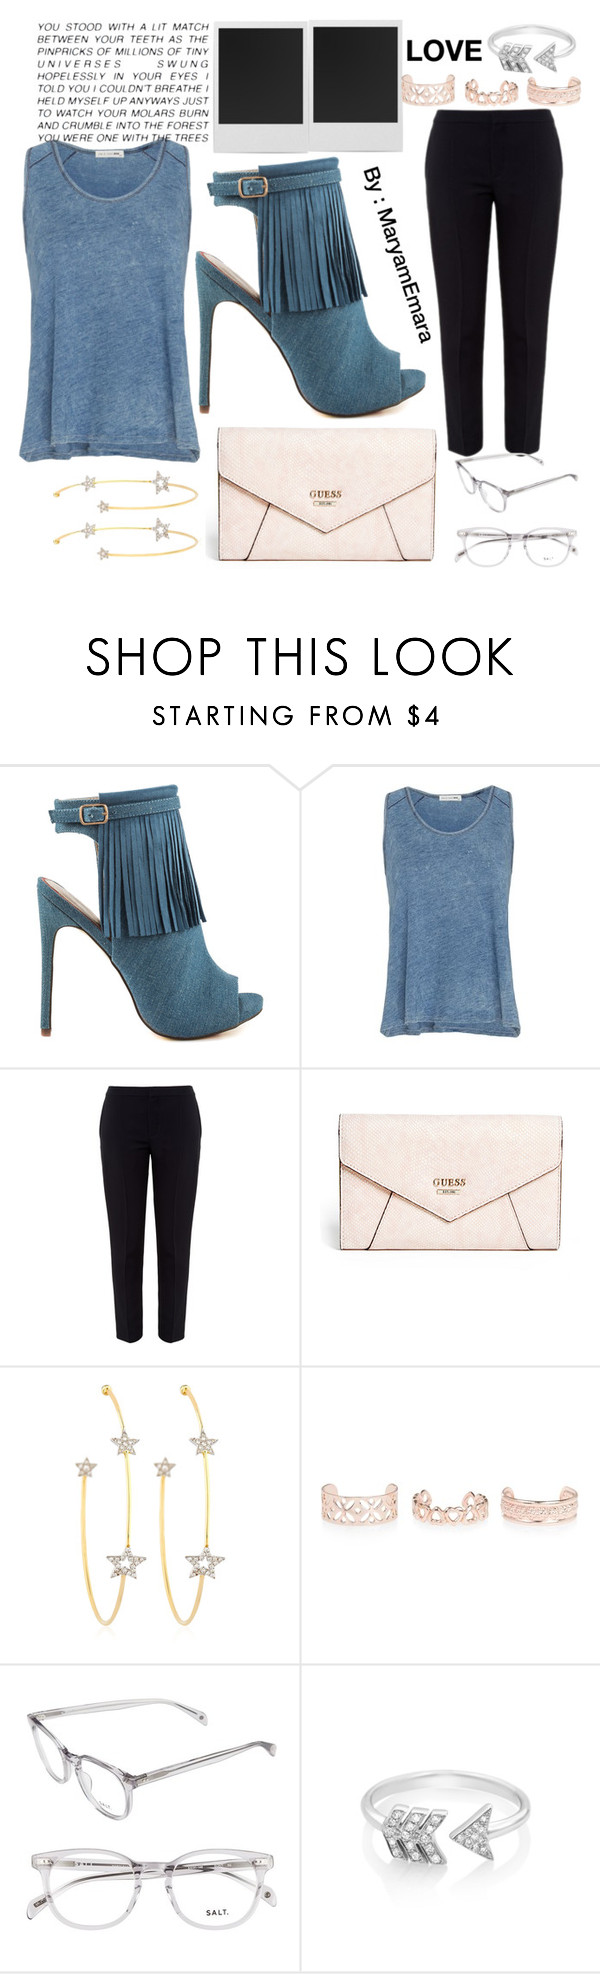 """Casual"" by maryamemara ❤ liked on Polyvore featuring Luichiny, rag & bone, Chloé, GUESS, PERLOTA, Polaroid, New Look and EF Collection"